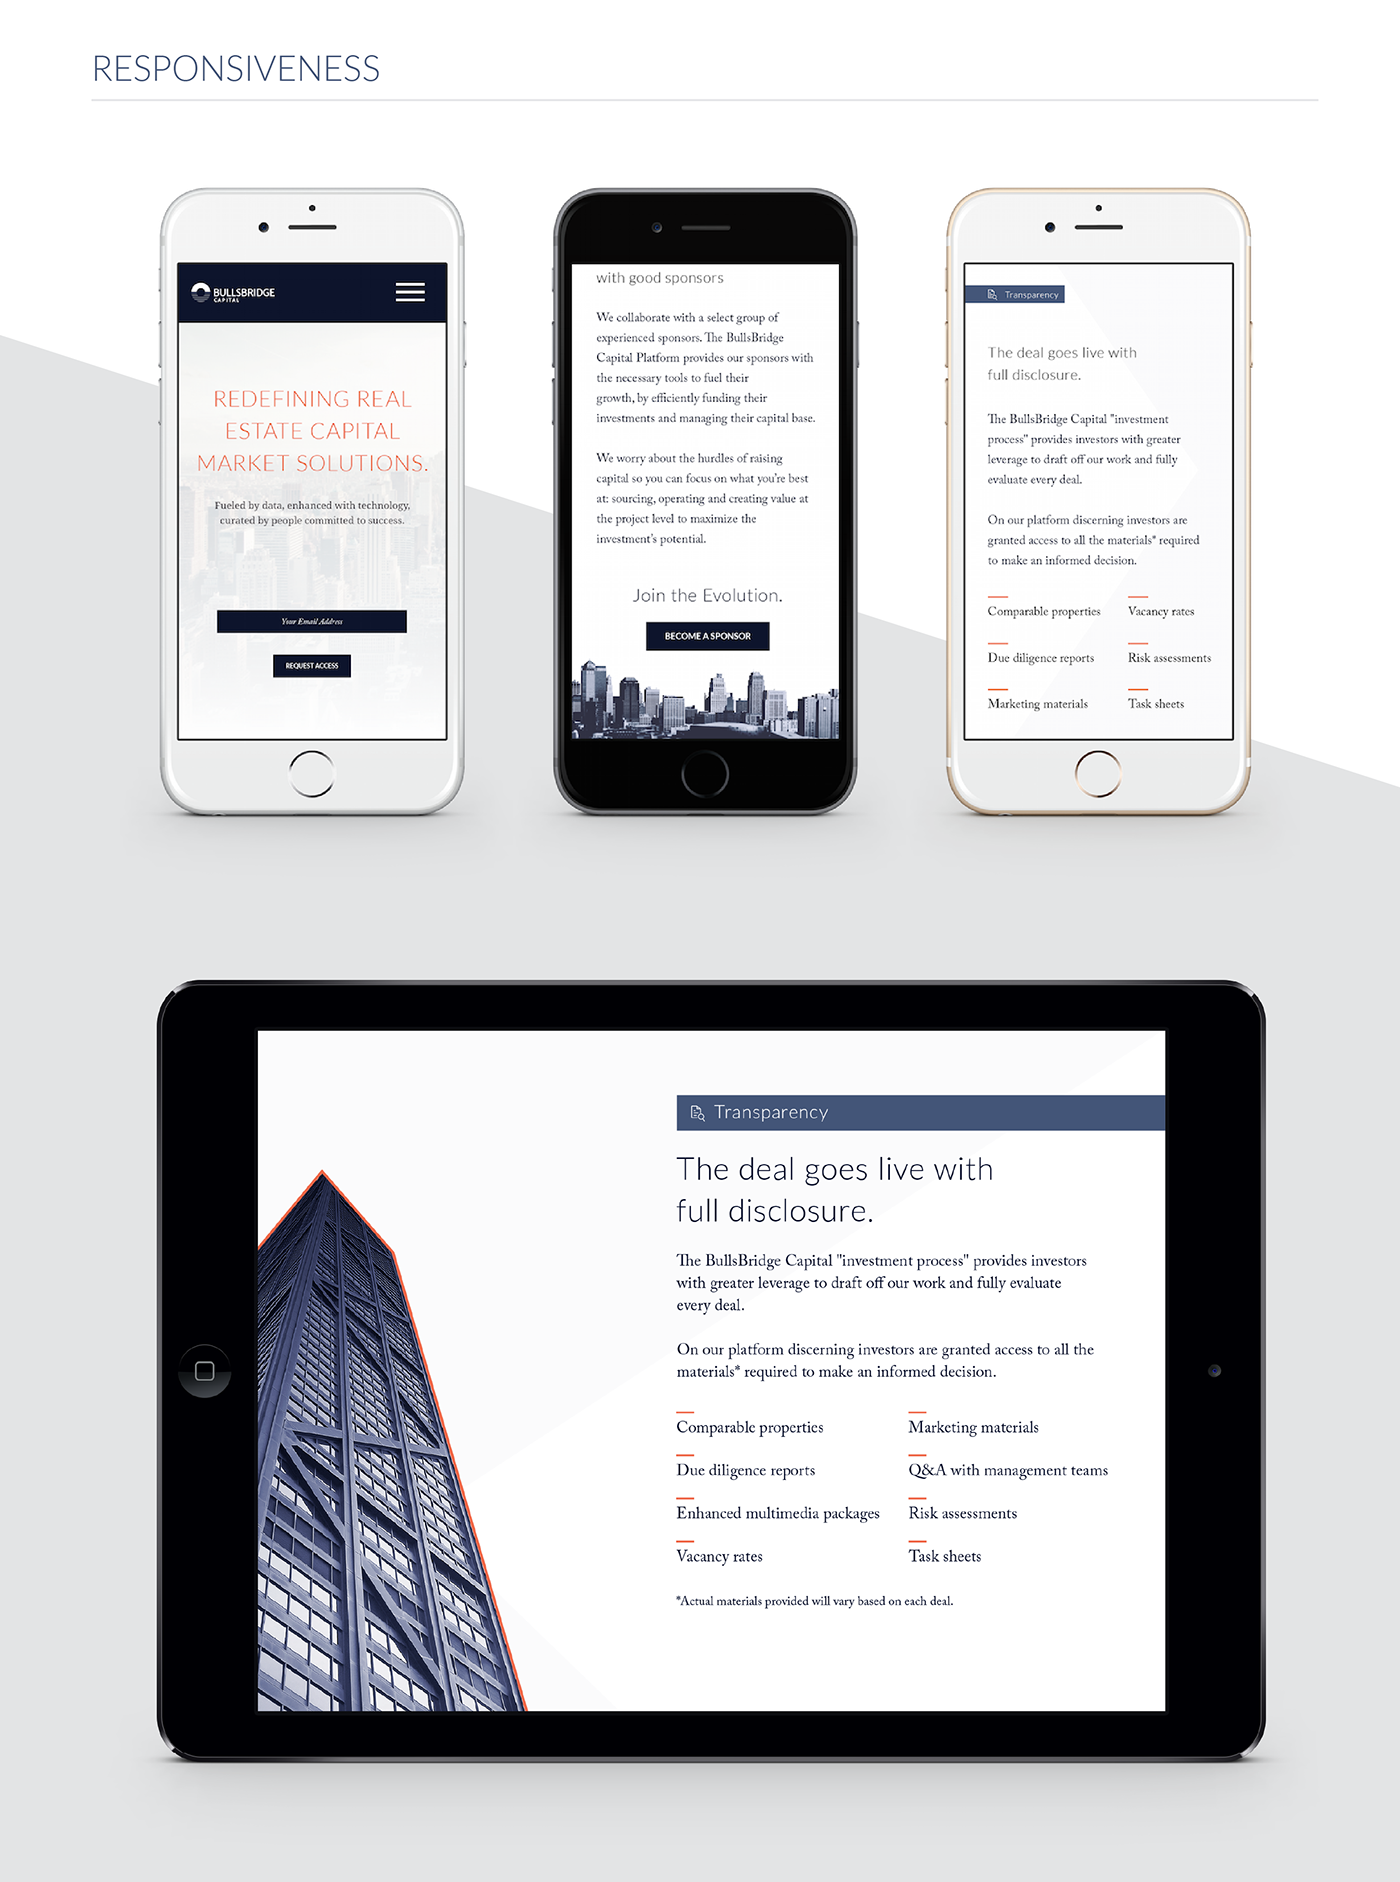 real estate crowdfunding Fintech Startup landing page front-end development Style Guide user experience home page Responsive